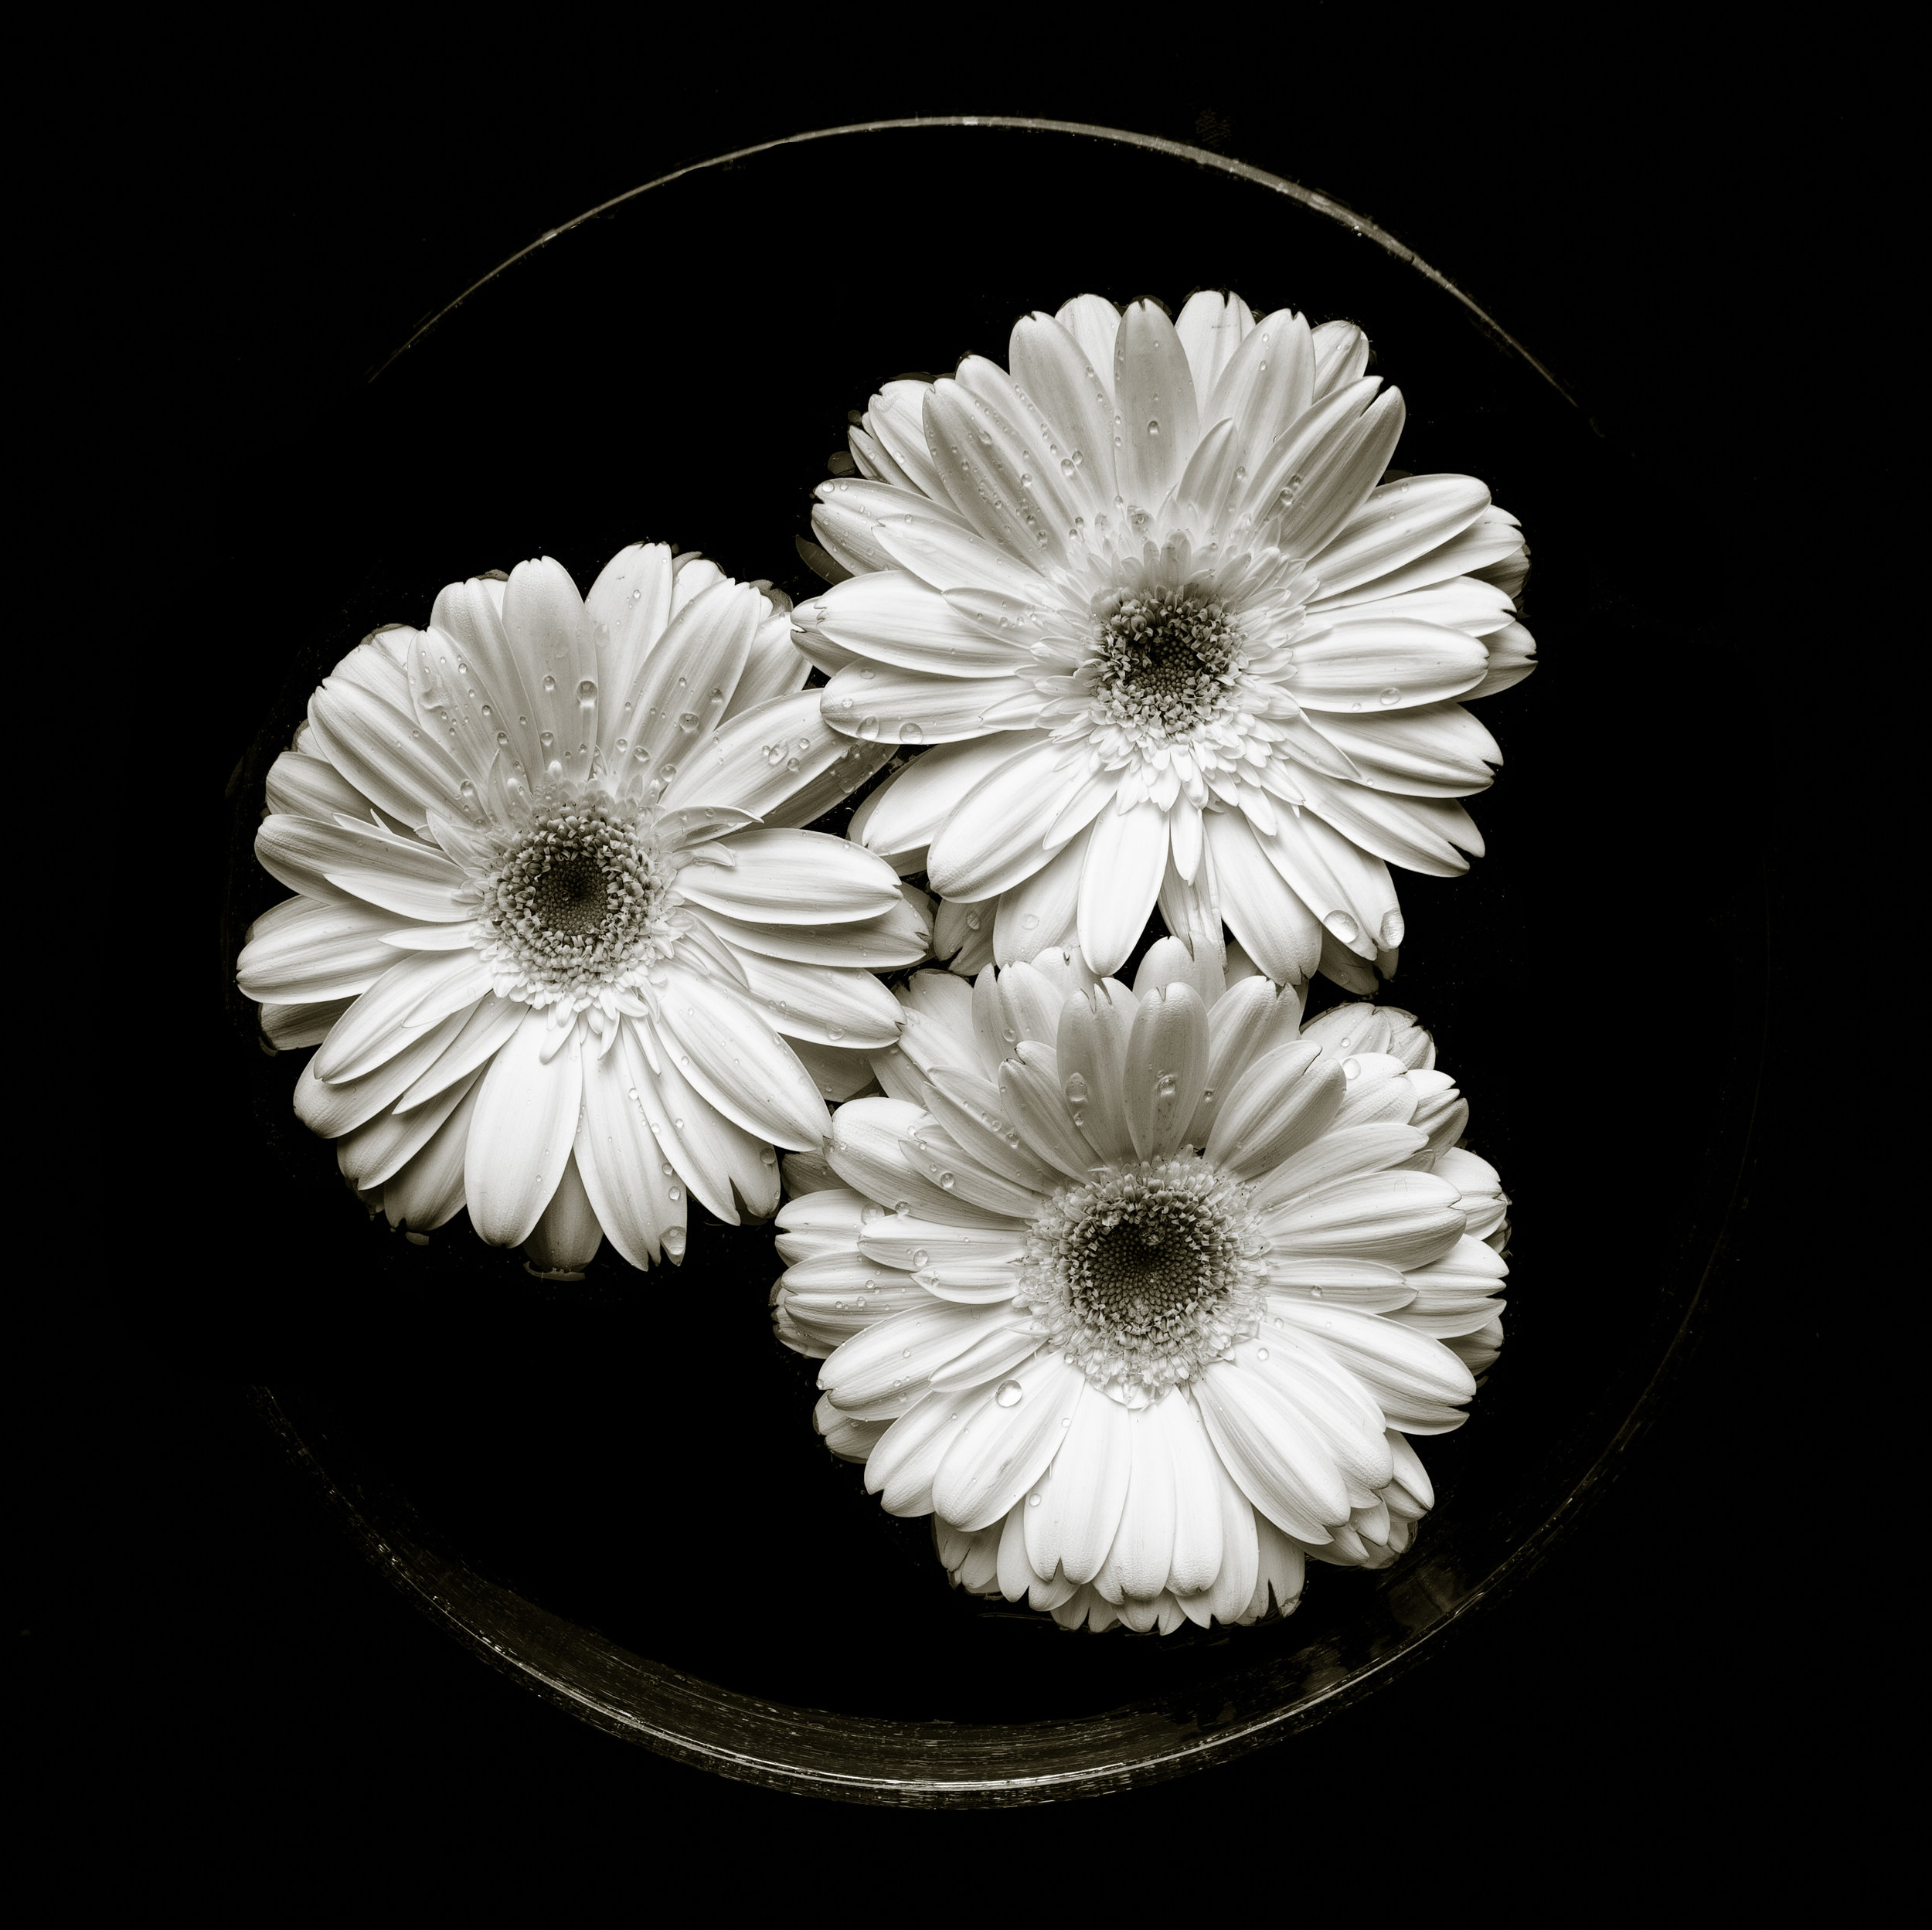 Black white gerbera daisy circular arrangement three eyes